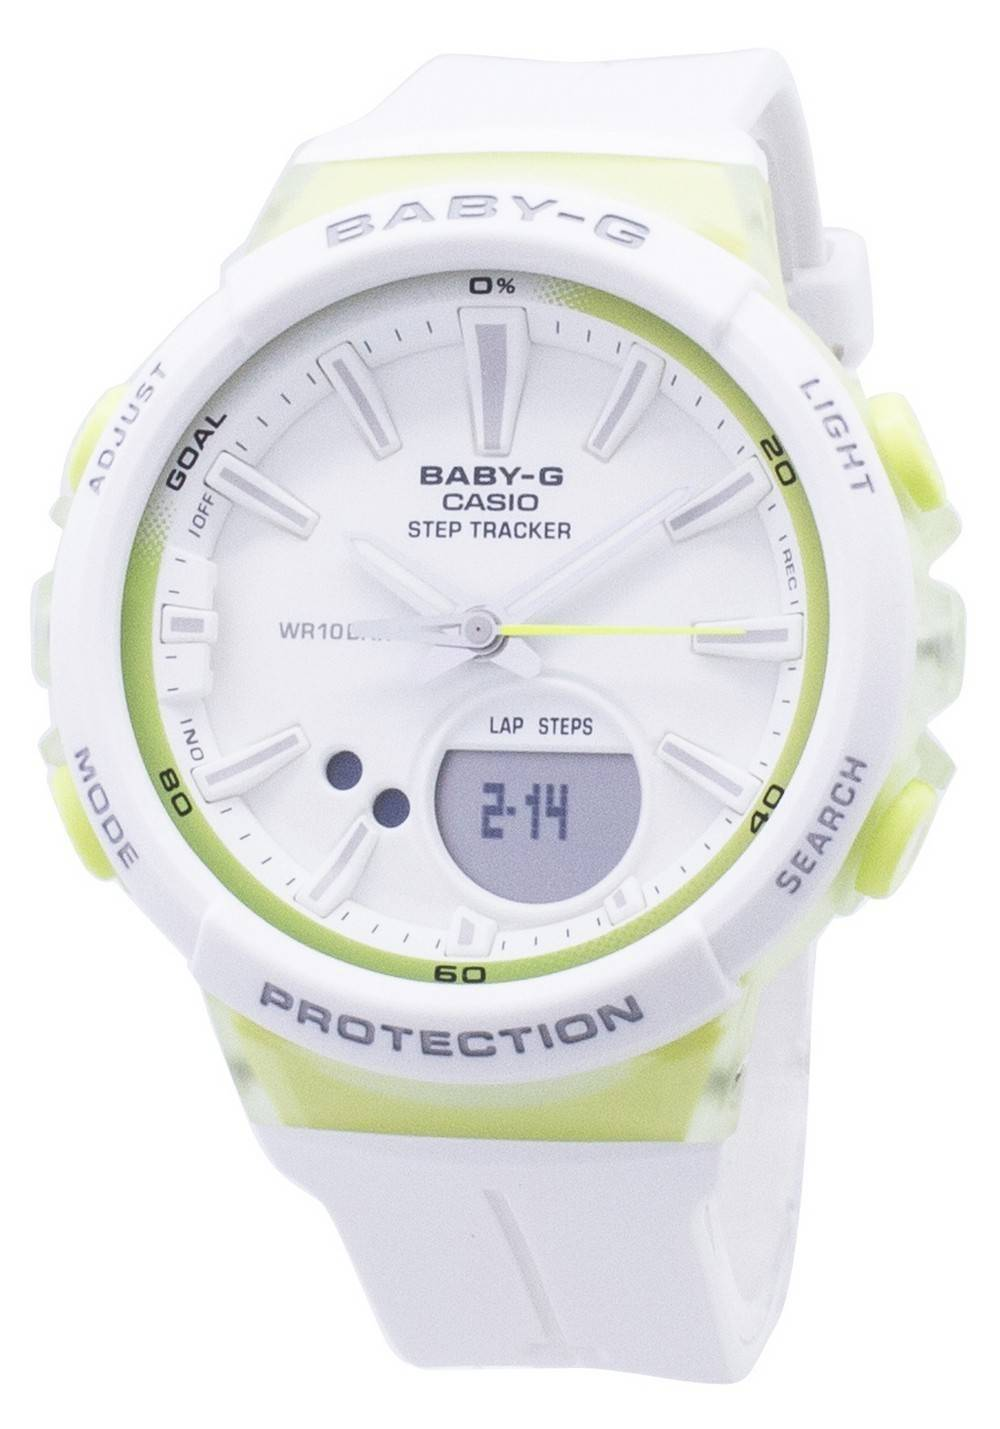 8616c742f6d Details about Casio Baby-G BGS-100-7A2 BGS100-7A2 Step Tracker Analog  Digital Womens Watch